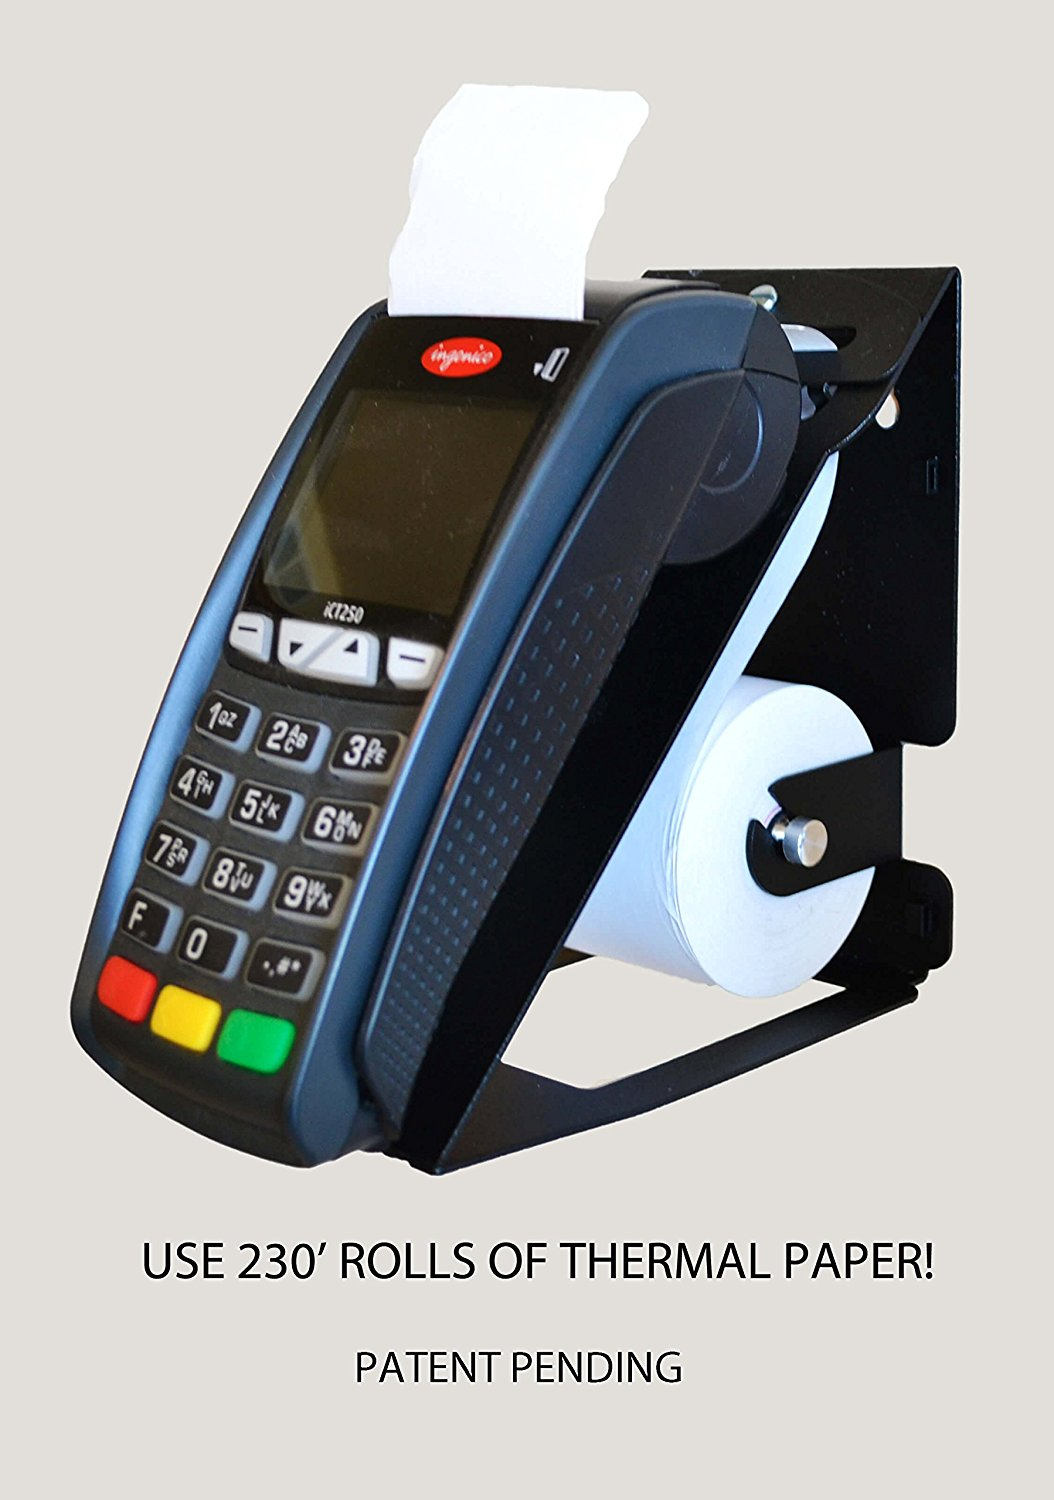 Ingenico Wall Mount, Thermal Paper Adapter Combo! Fits ICT220, ICT250